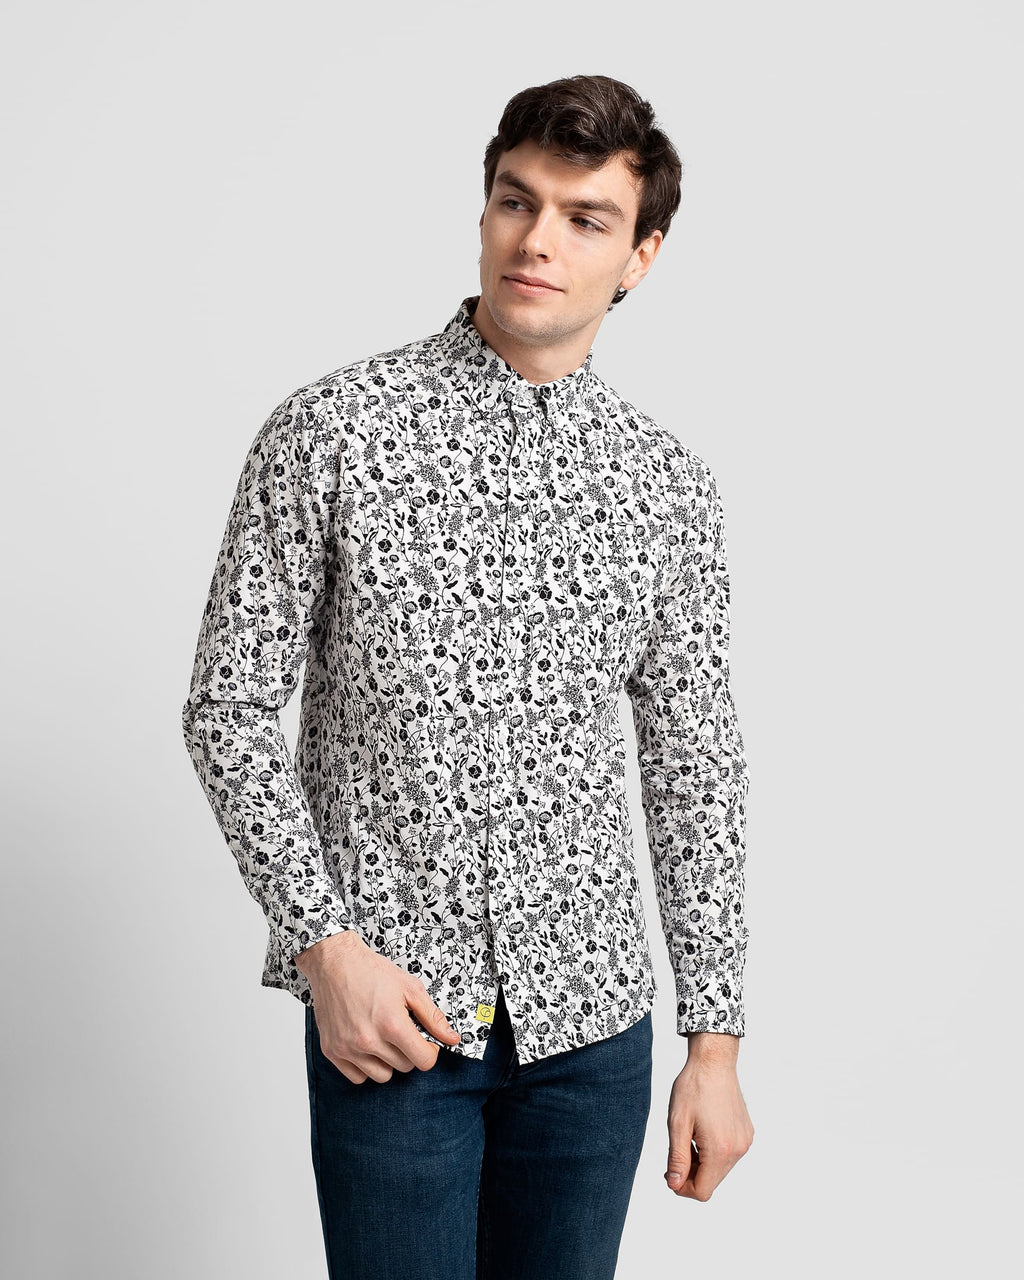 Poplin & Co. - Long Sleeve Shirt - Floral Fields - Guys